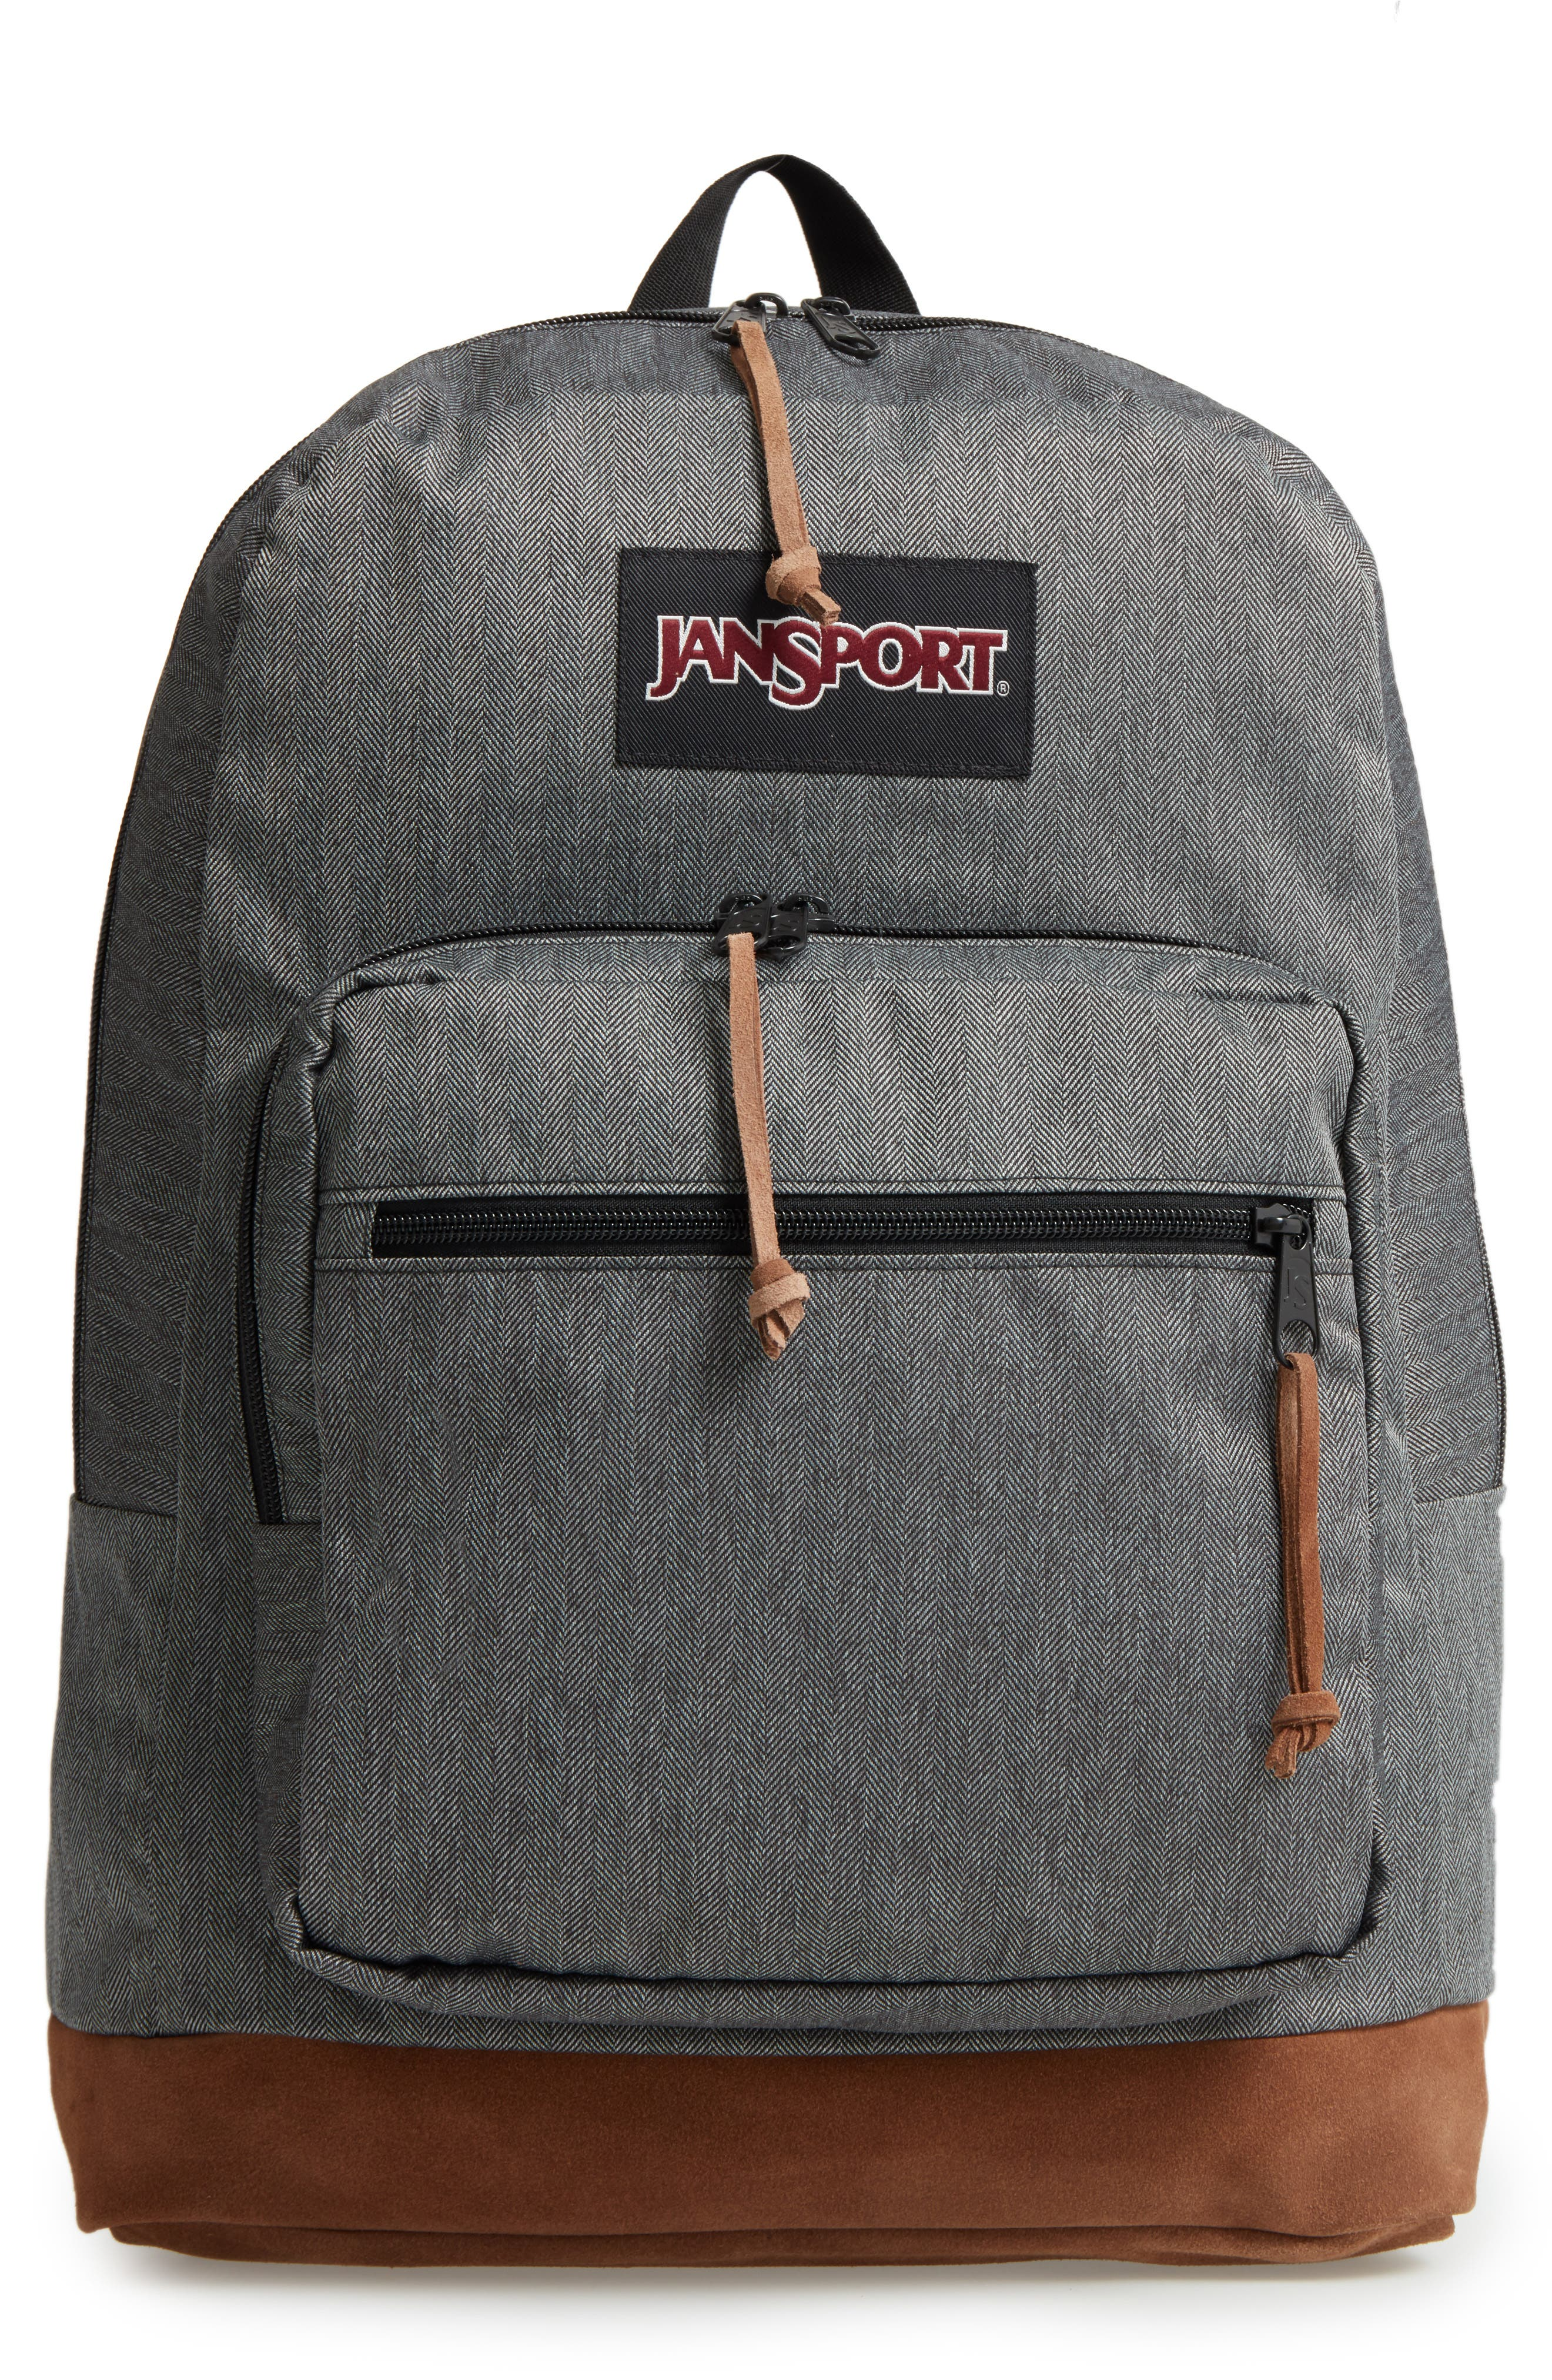 'Right Pack' Backpack,                             Main thumbnail 1, color,                             BLACK/ WHITE